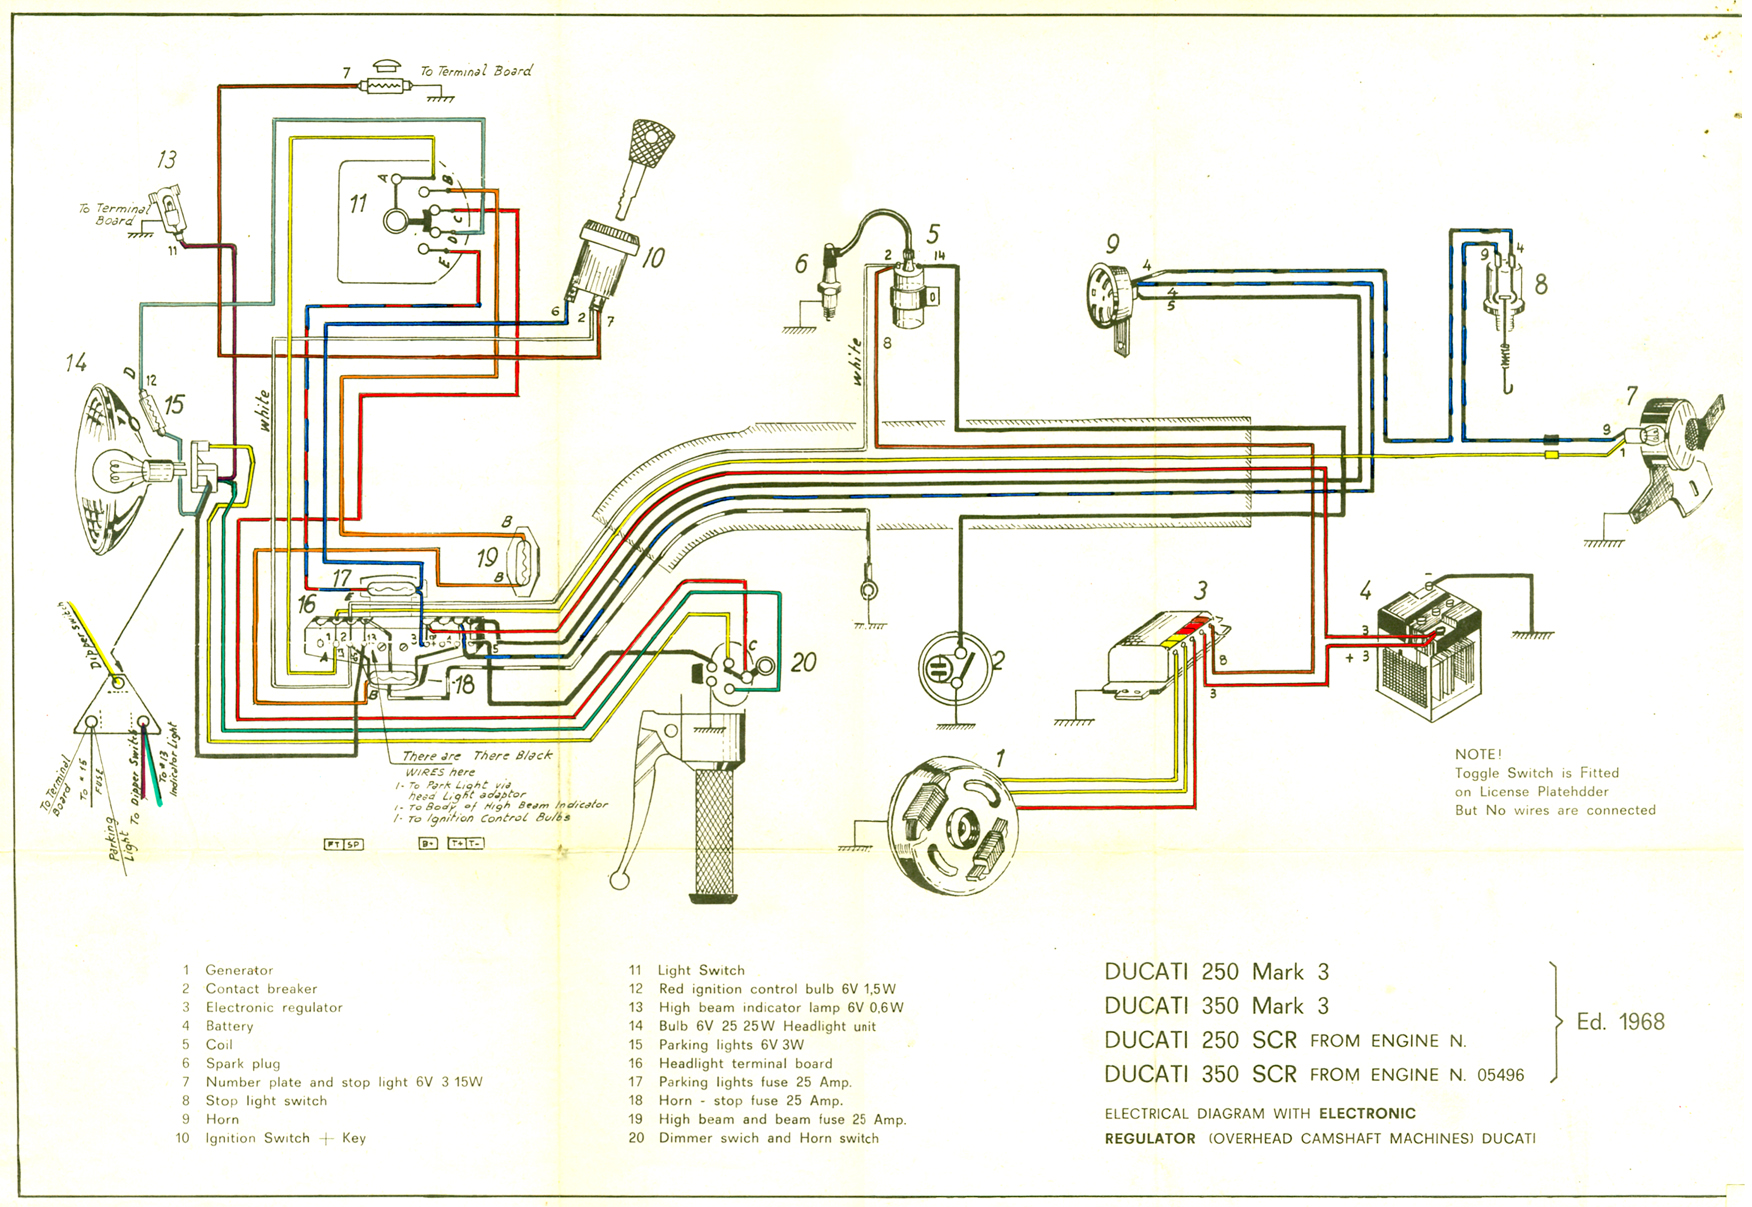 ducati wiring diagram ducati automotive wiring diagrams ducati wiring diagram